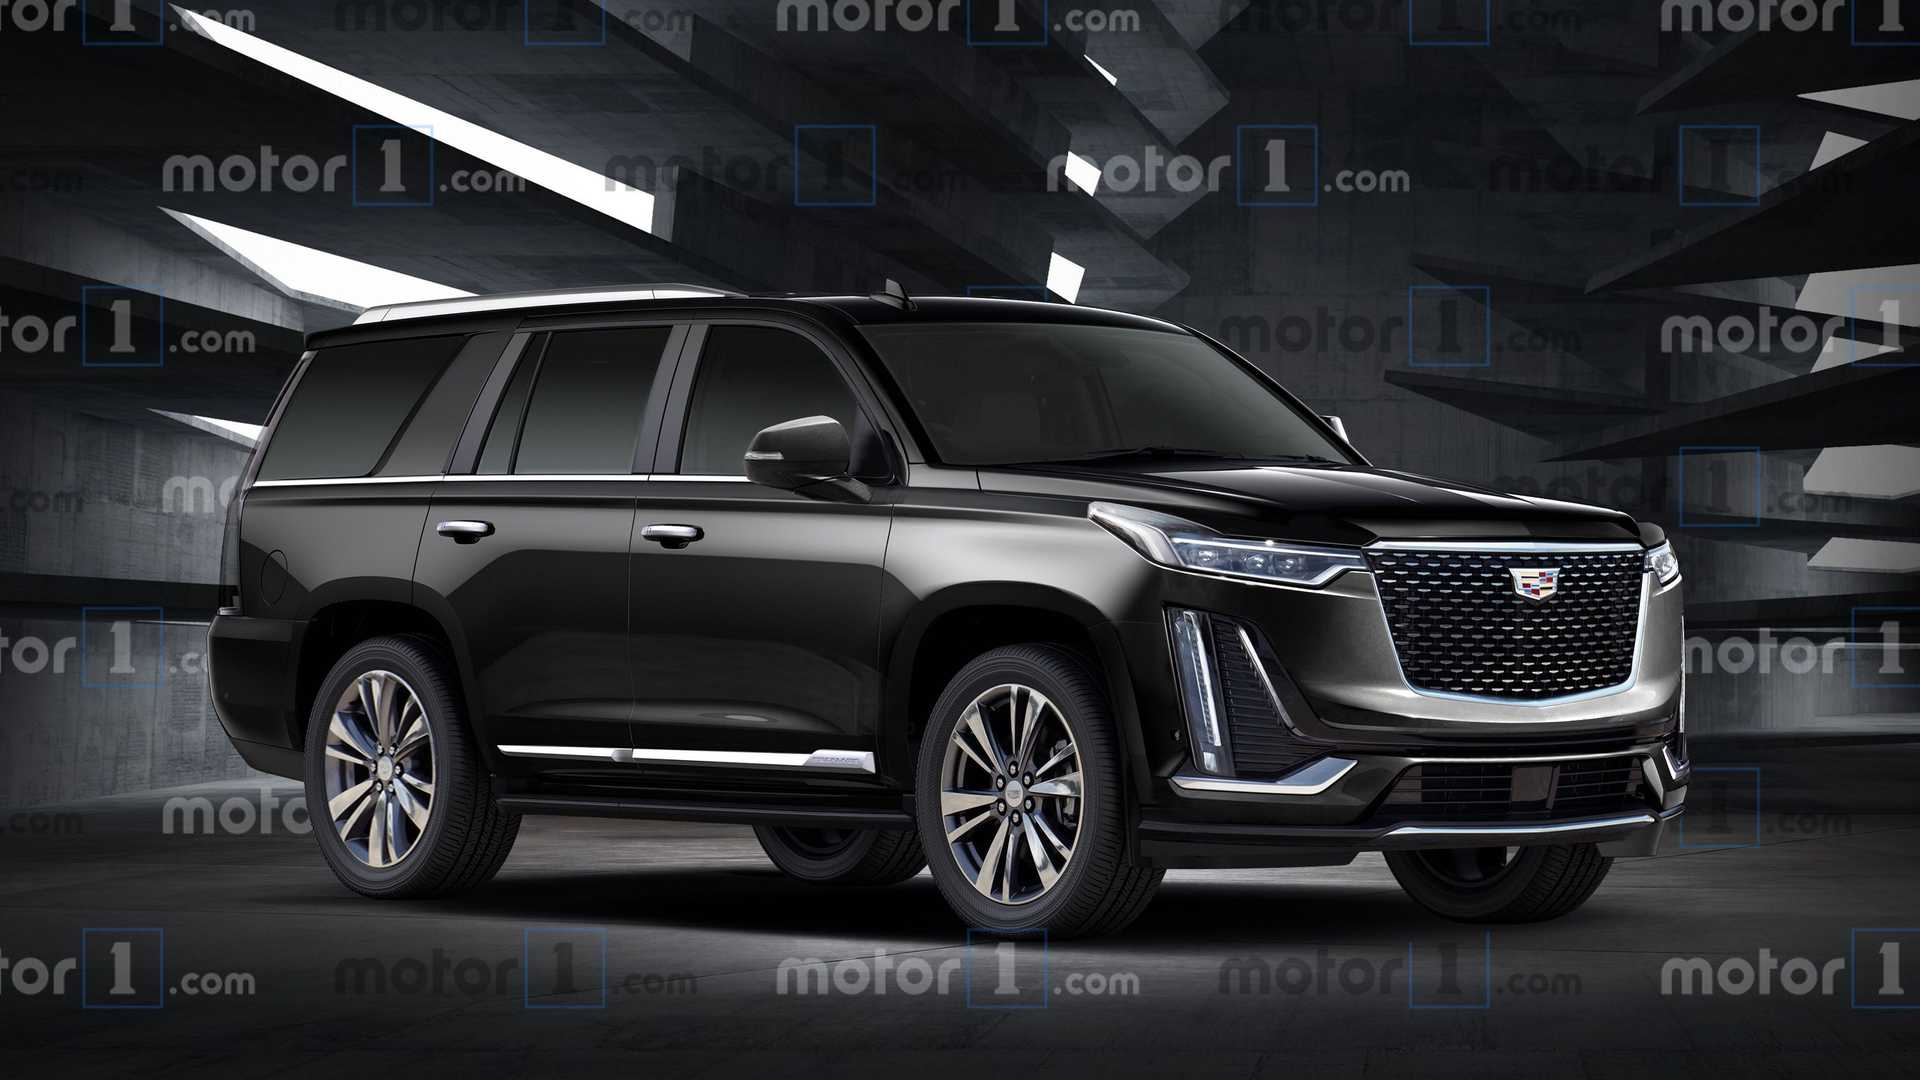 A New Image on the Electric Cadillac Escalade - The Next ...